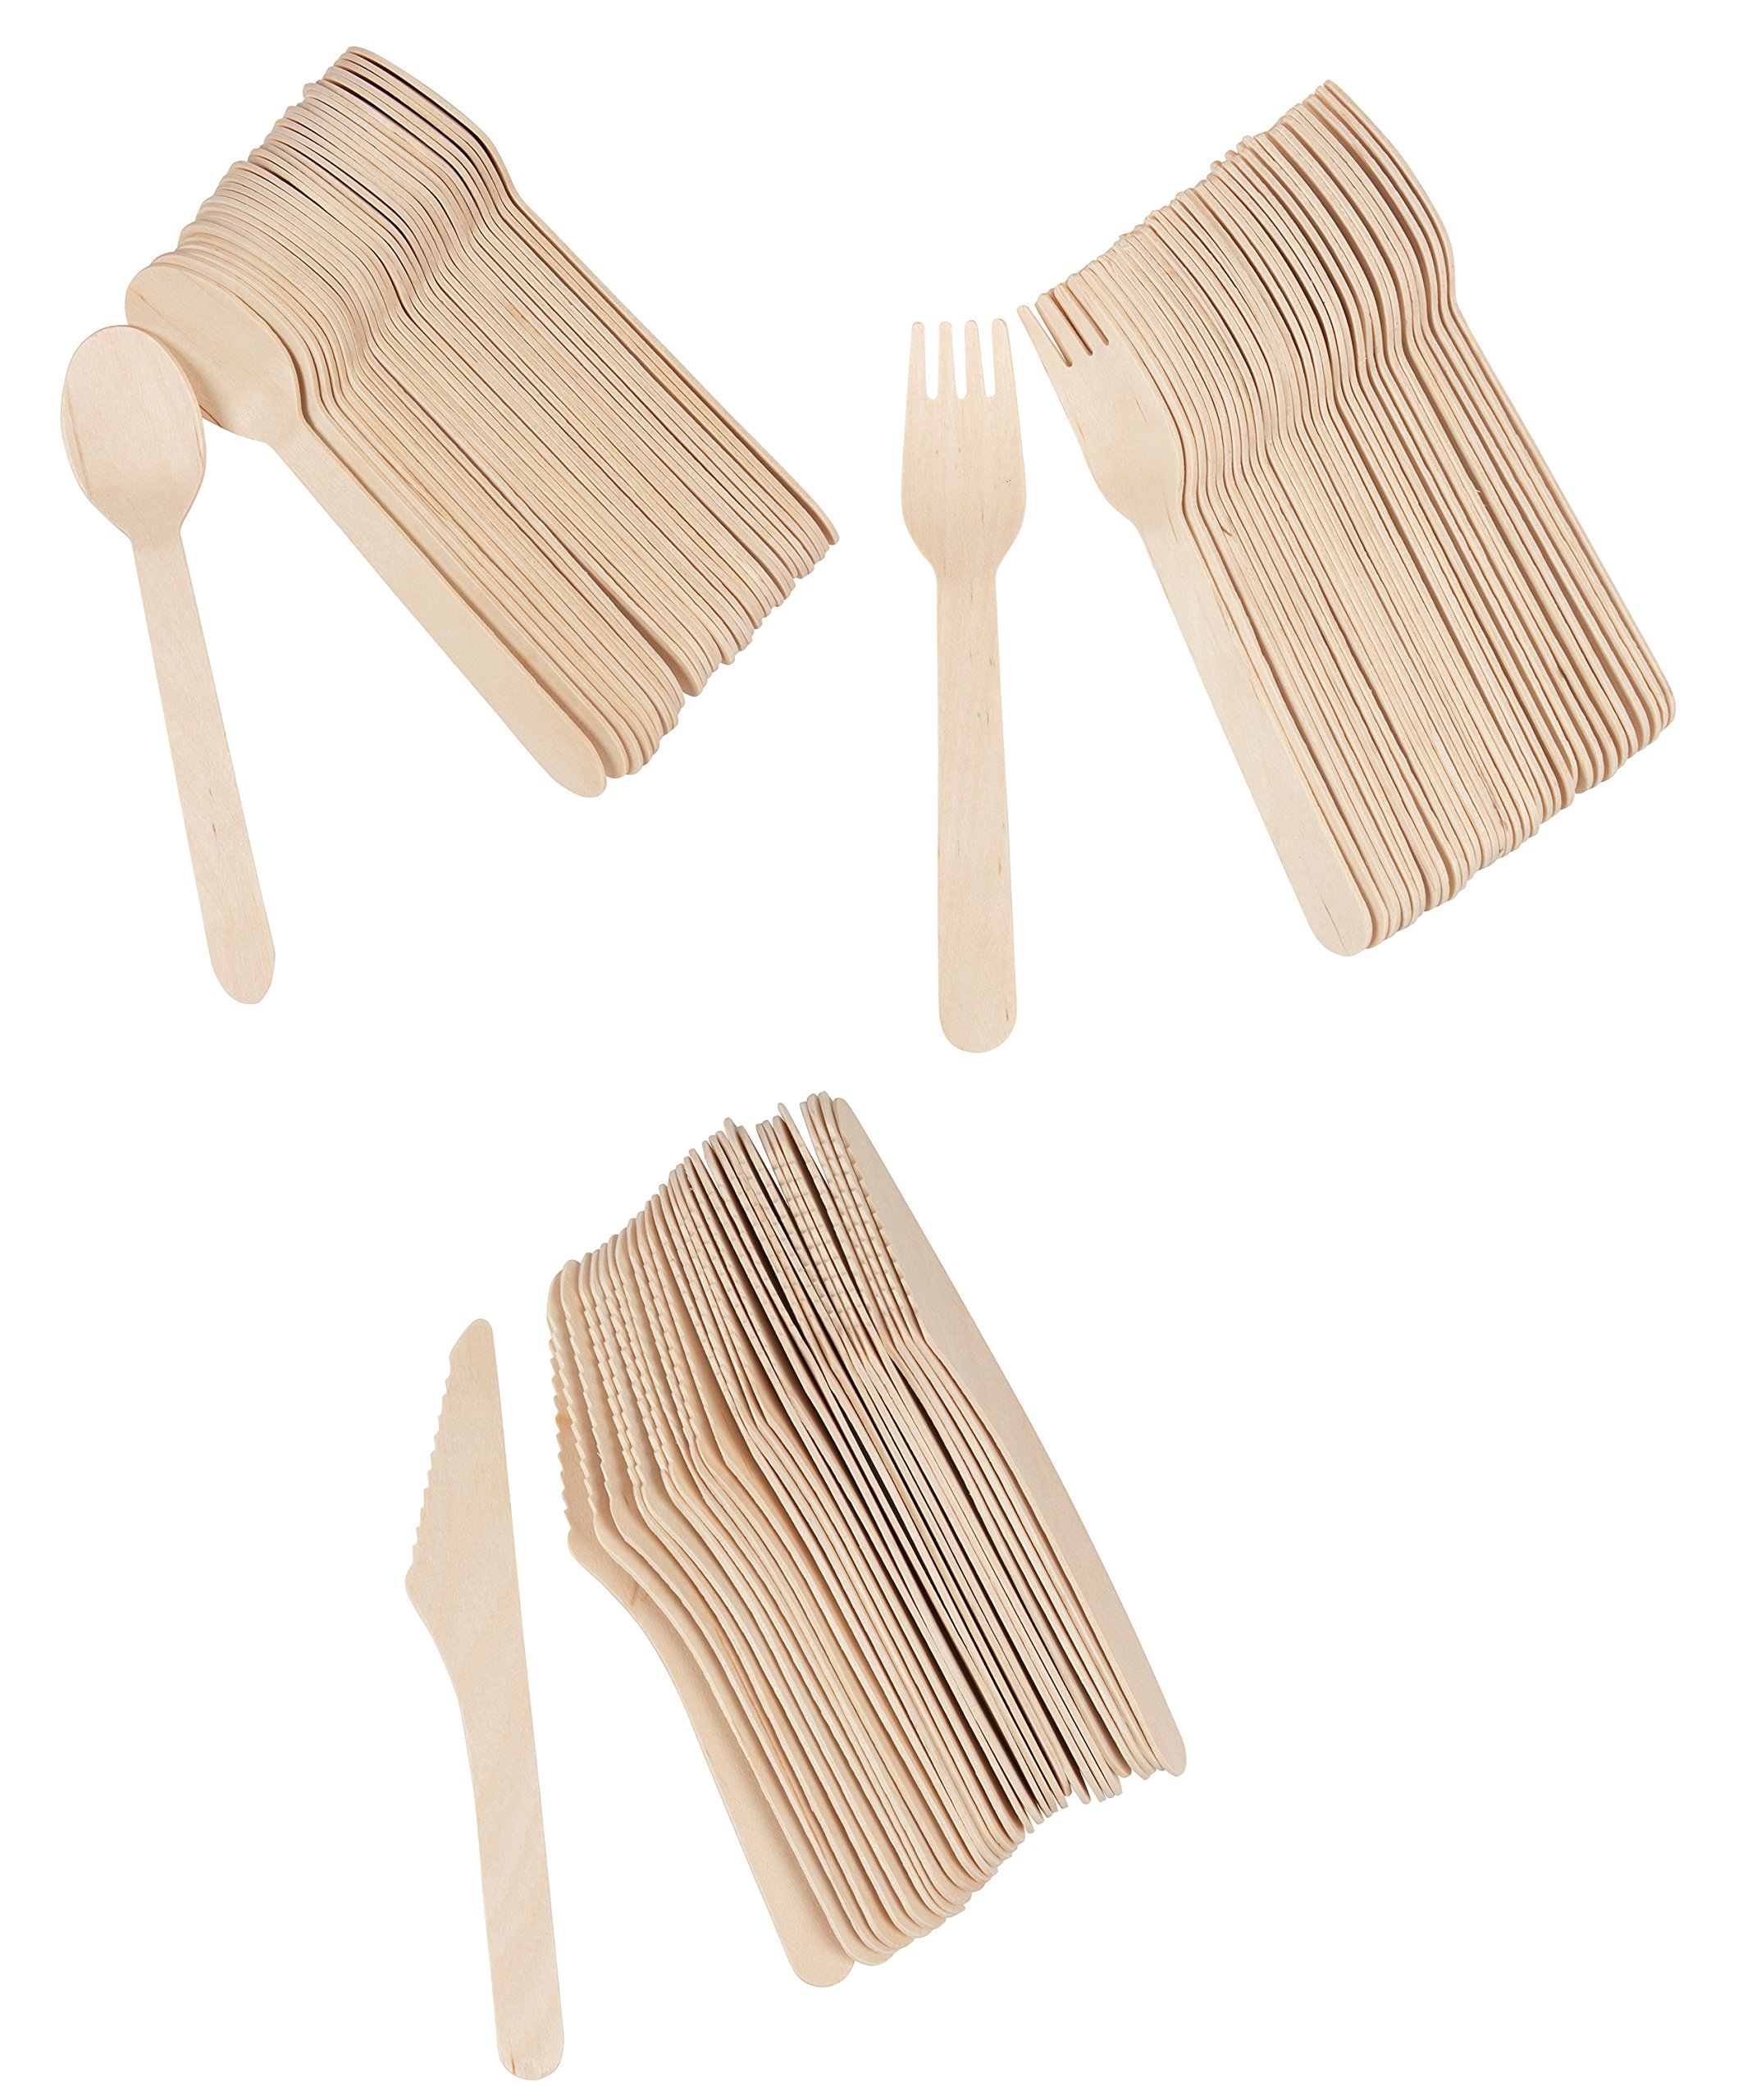 Juvale Disposable Cutlery - 400-Pack Wood Disposable Utensil Set, Knife, Fork Spoon Set, Biodegradable Eco-Friendly Natural Wood Party, Events, Holiday by Juvale (Image #8)